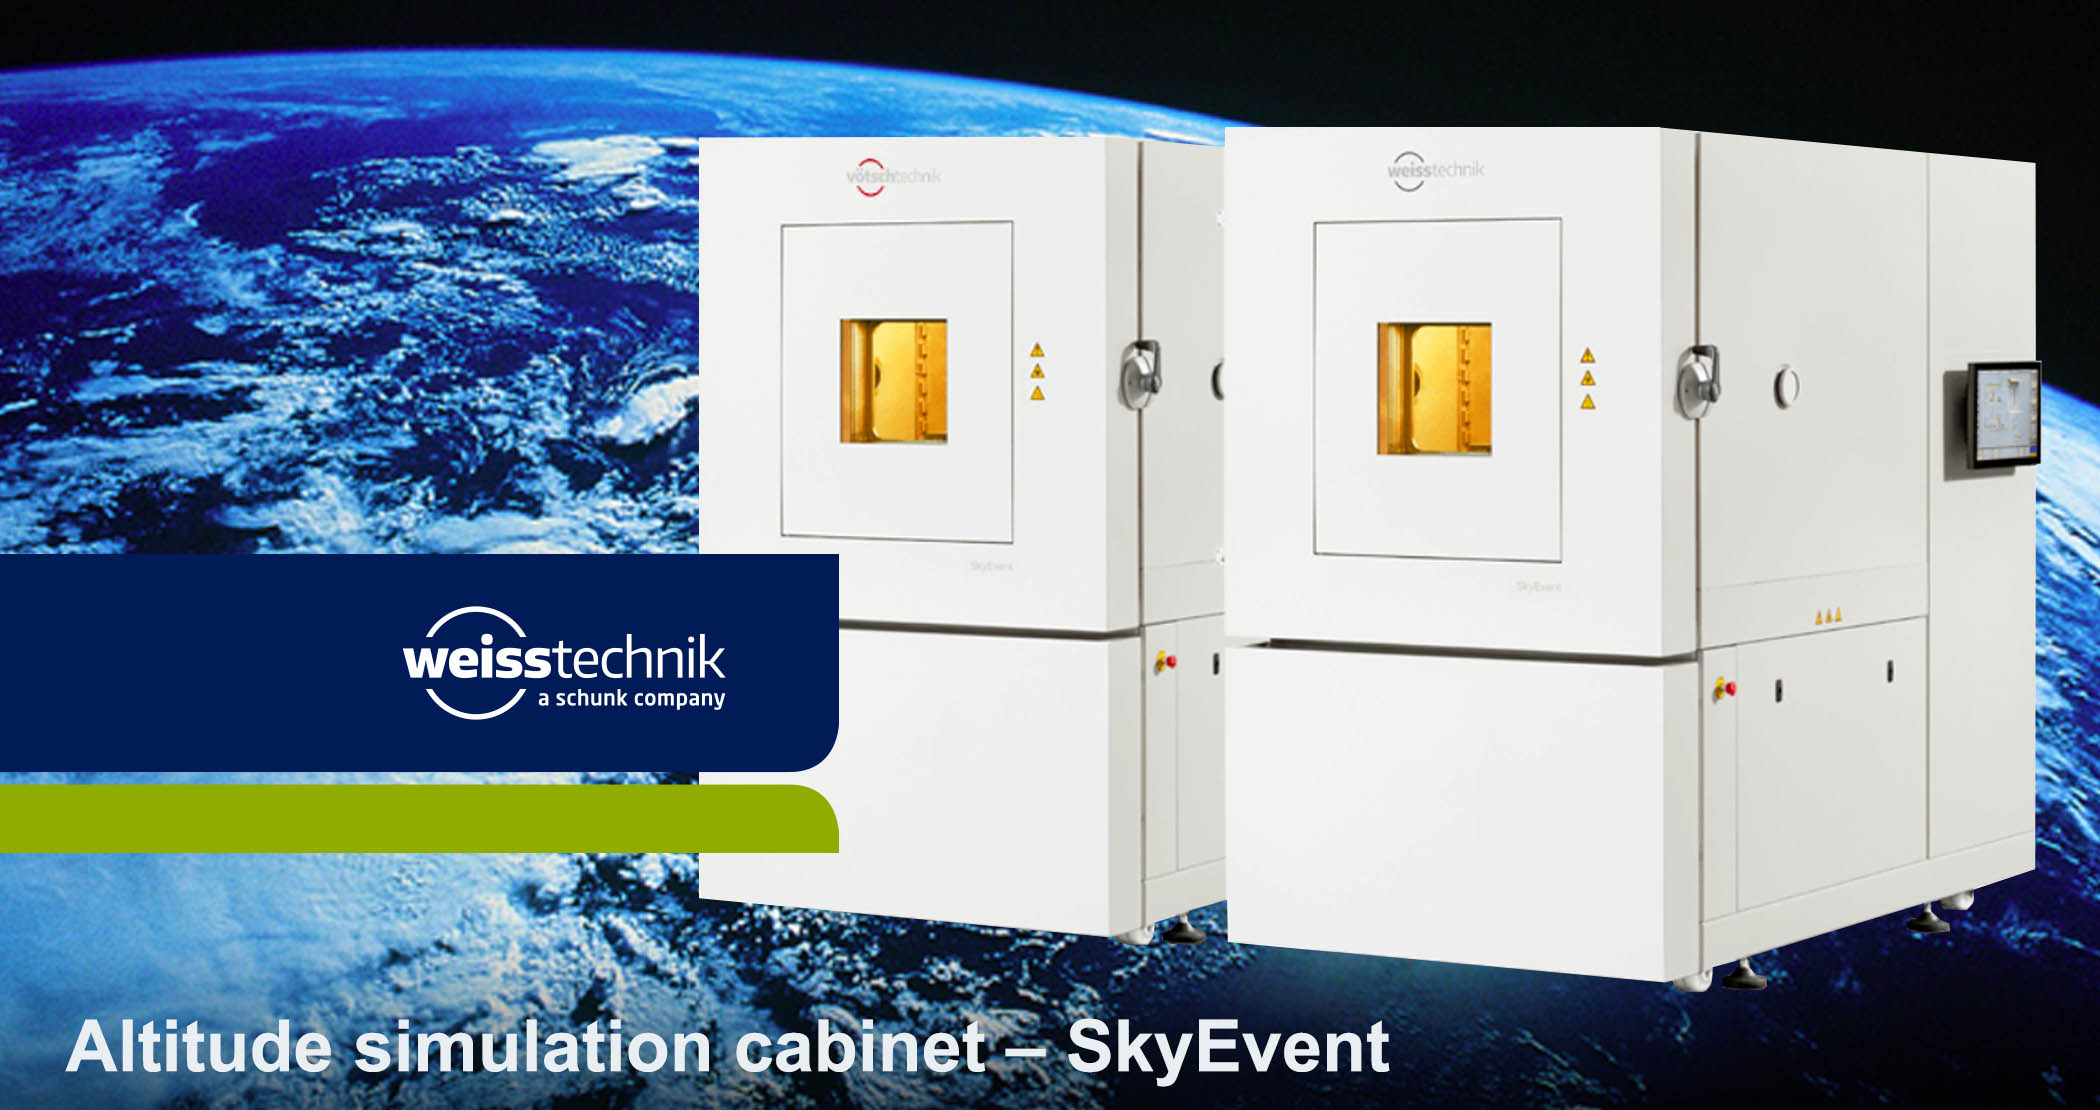 Altitude simulation cabinet, SkyEvent